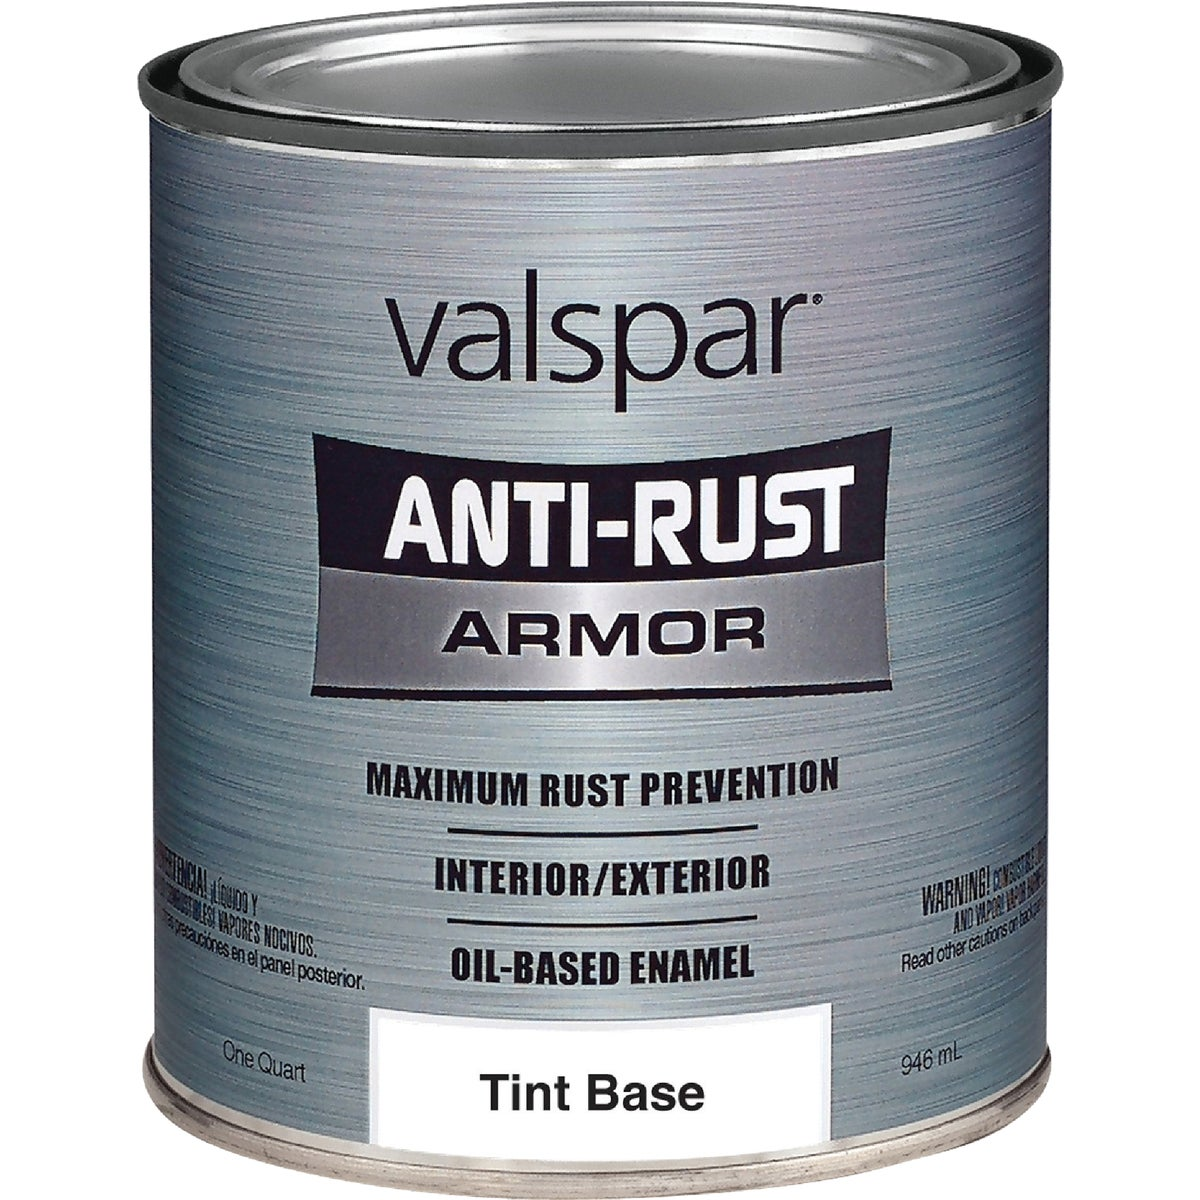 TINT BASE RUST ENAMEL - 044.0021811.005 by Valspar Corp